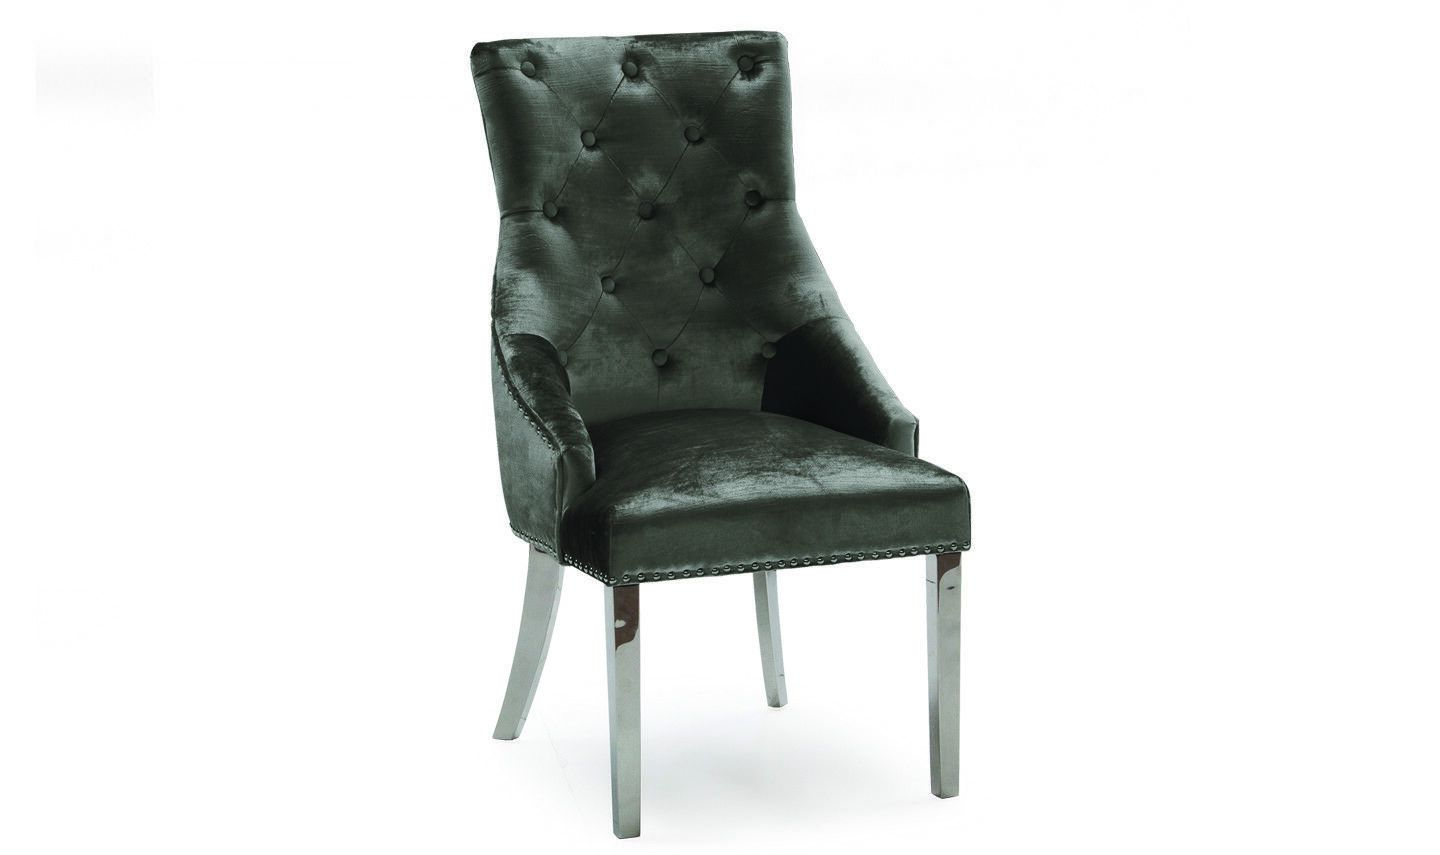 Belle Charcoal Knockerback Soft Velvet  Dining Chair With Ring - Chrome Legs - ImagineX Furniture & Interiors